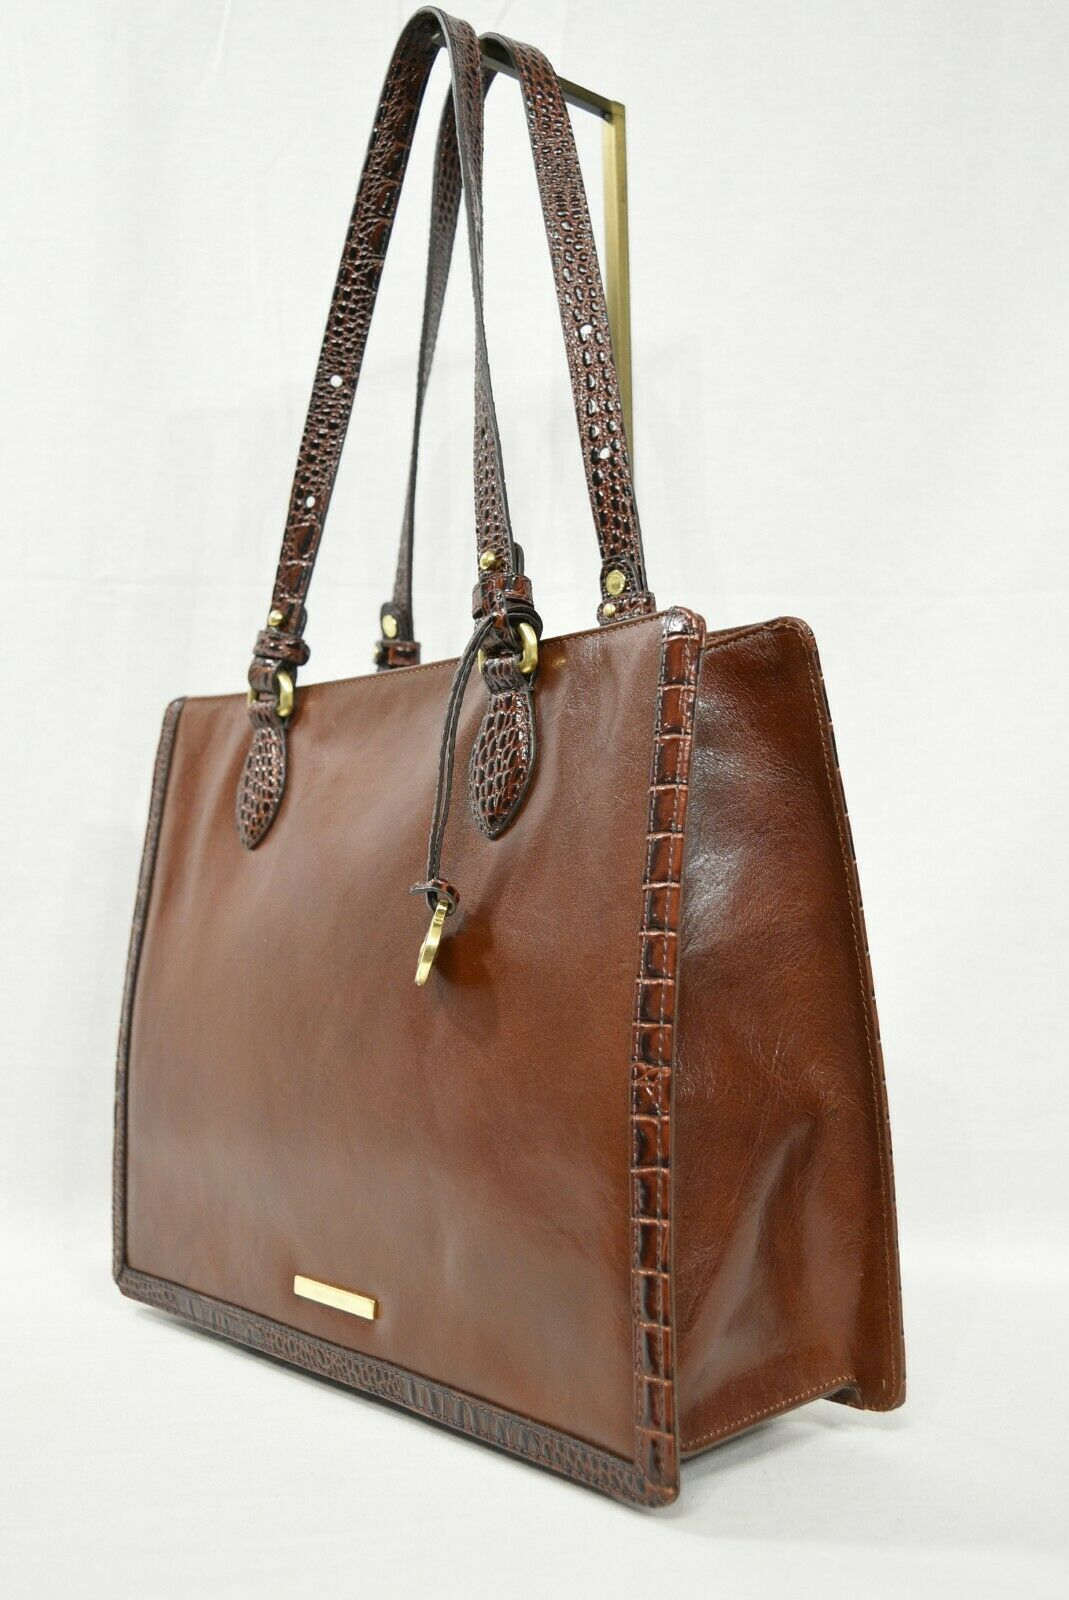 NWT Brahmin Medium Camille Leather Tote/Shoulder Bag in Cognac Quincy